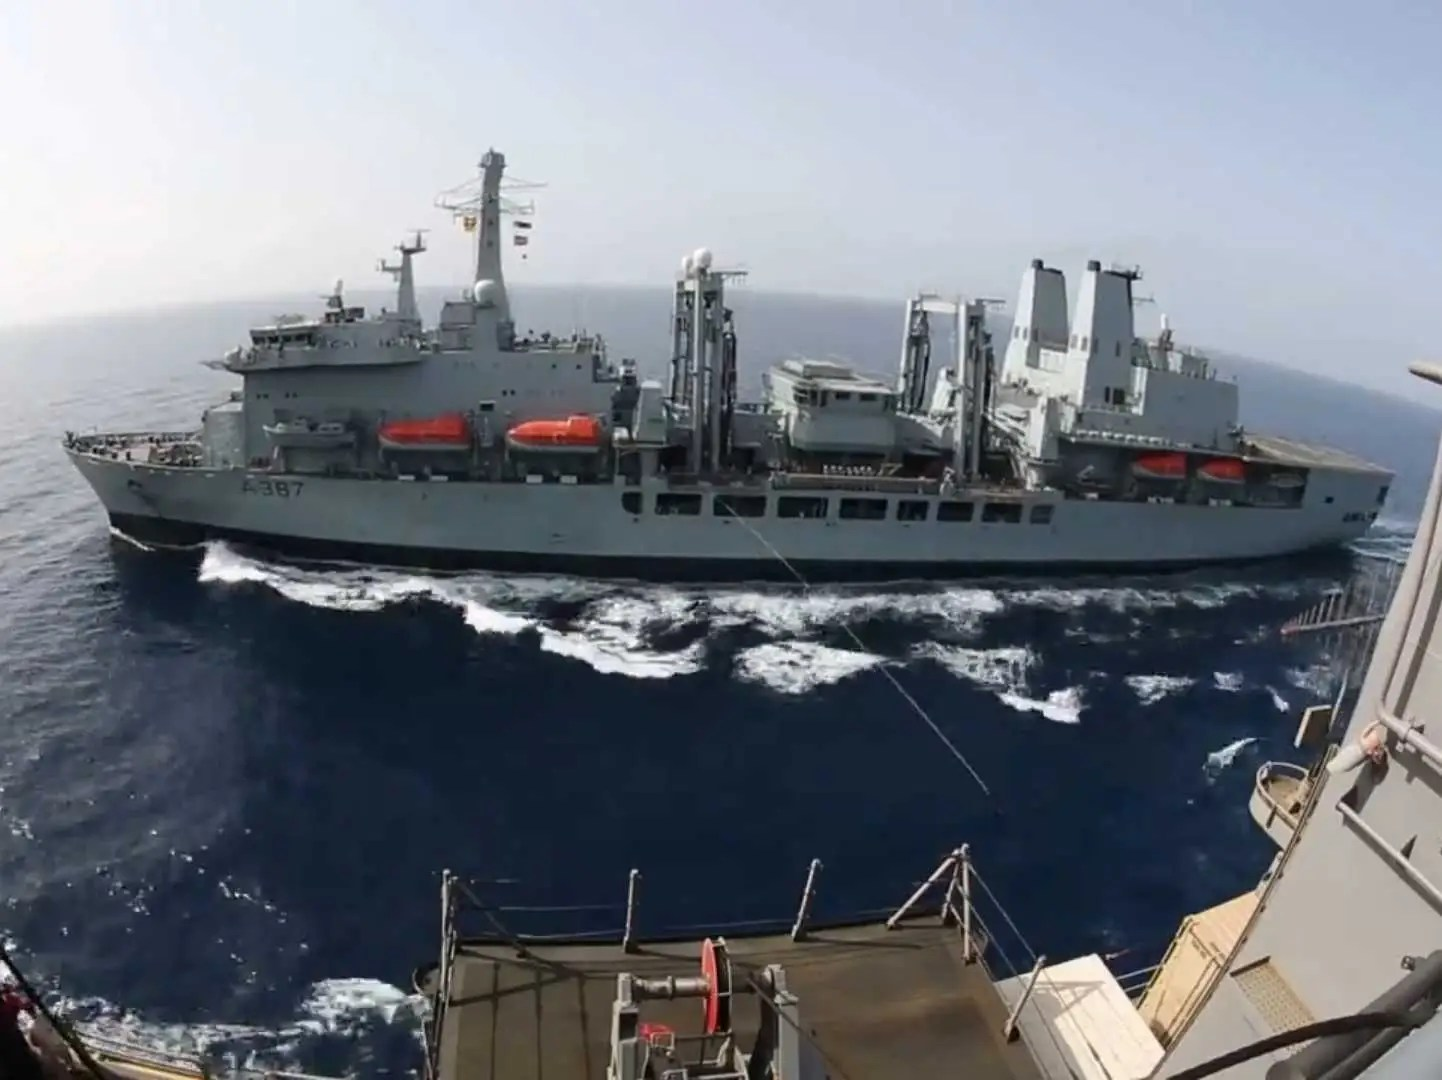 At Sea Video Shows How Ships Resupplied At Sea Business Insider